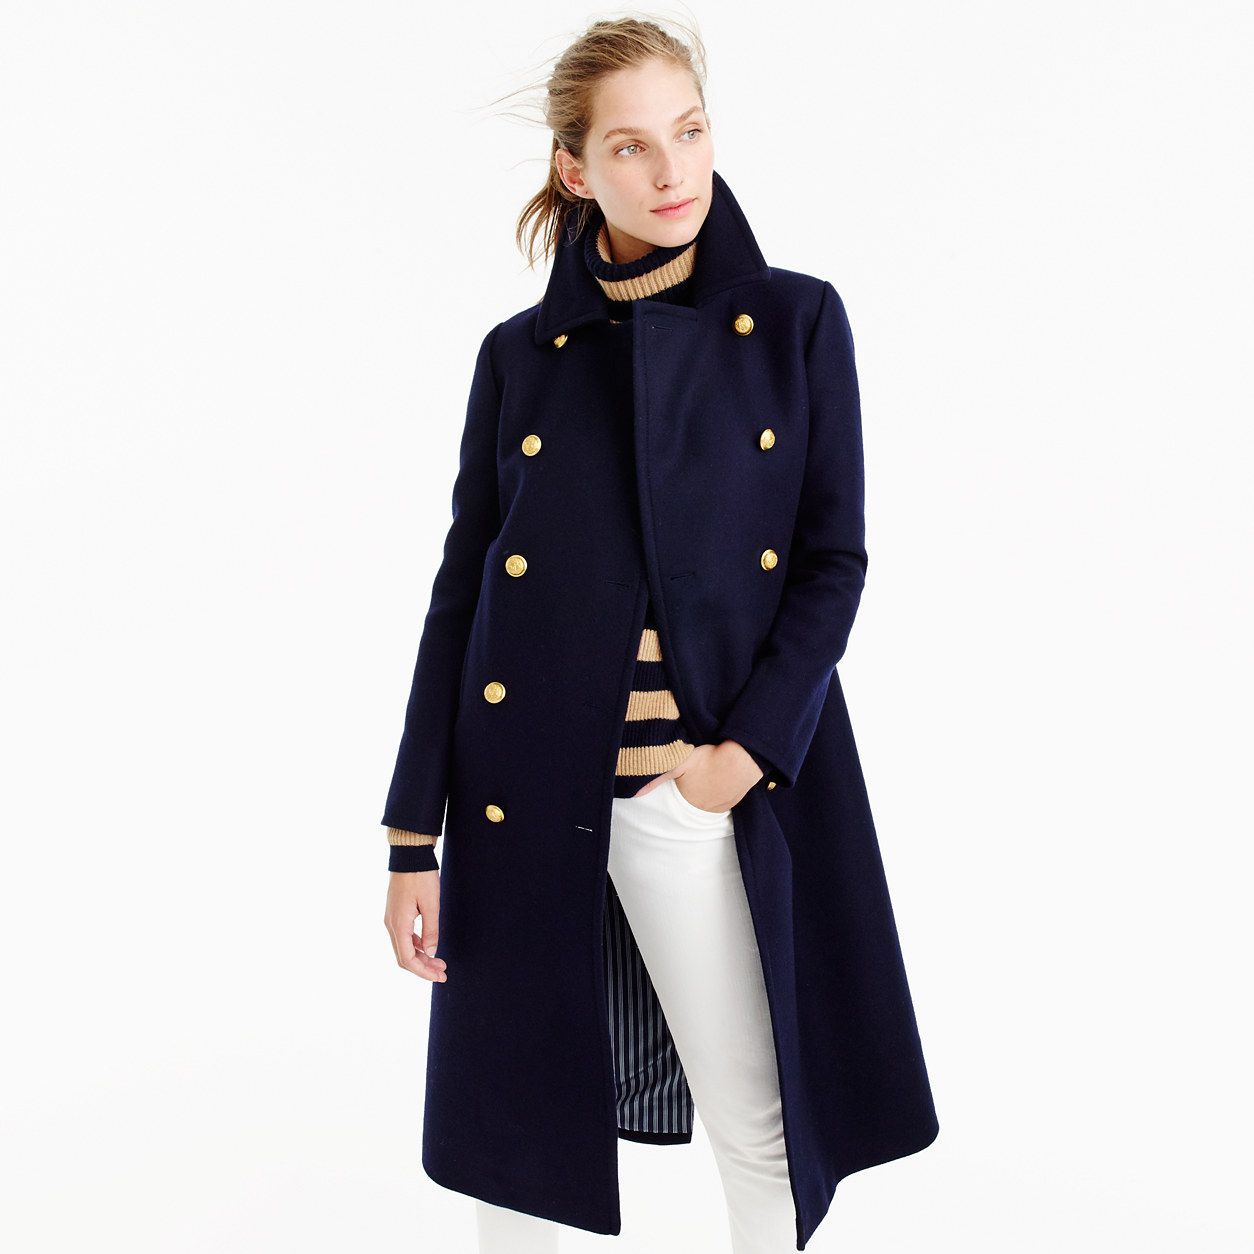 The Menswear Inspired Coat You Ll Still Be Wearing Years From Now This Military Fashion Clothes Coats Jackets Women